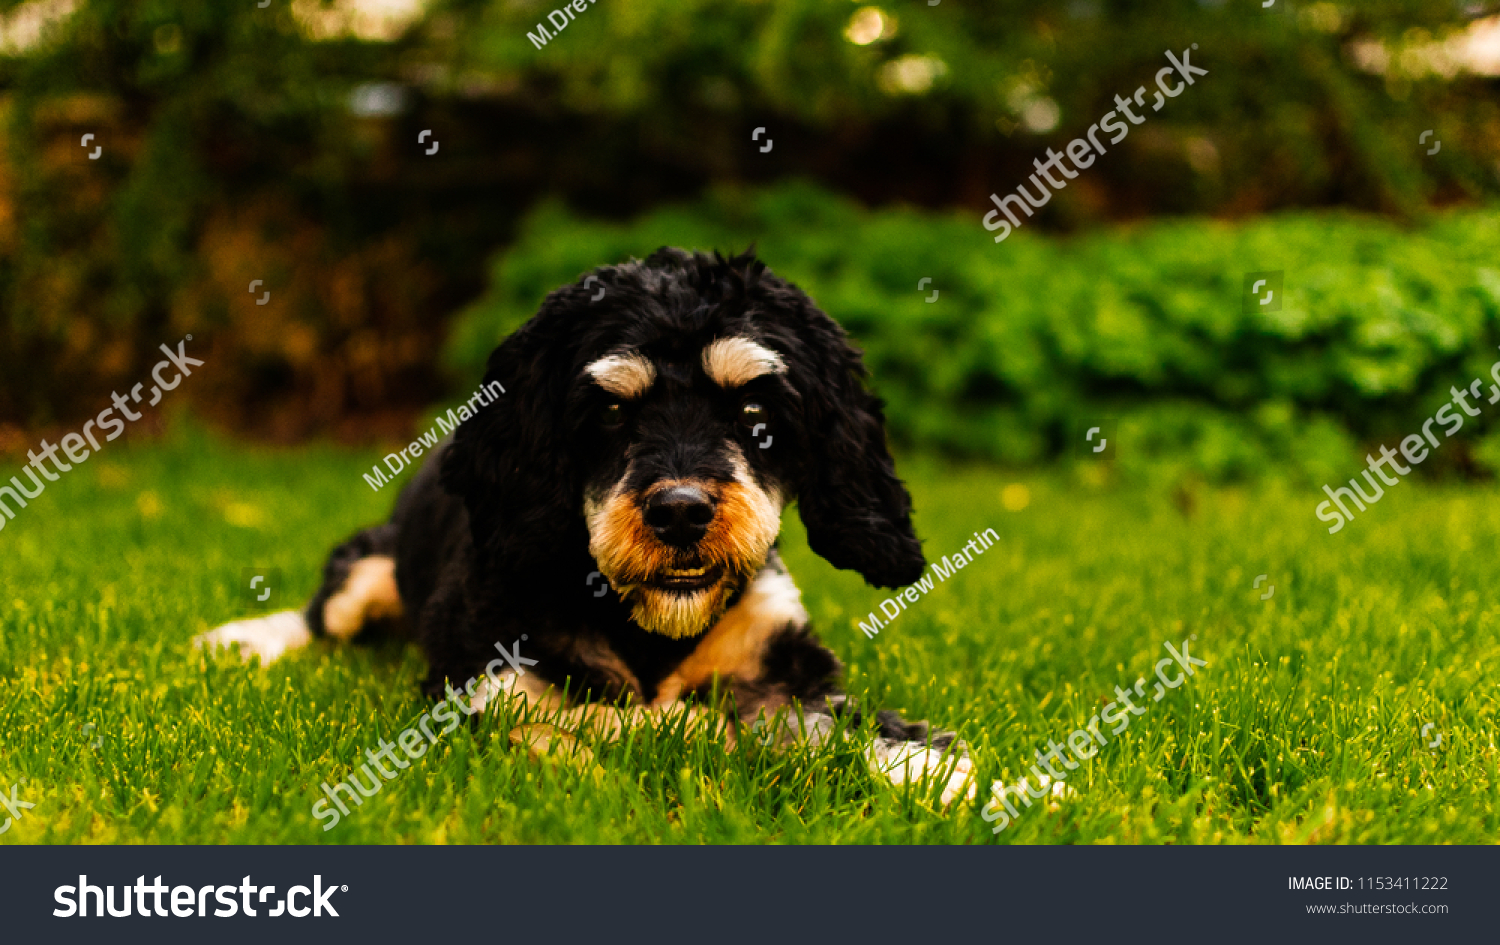 stock-photo-cavapoo-puppy-dog-pulling-a-